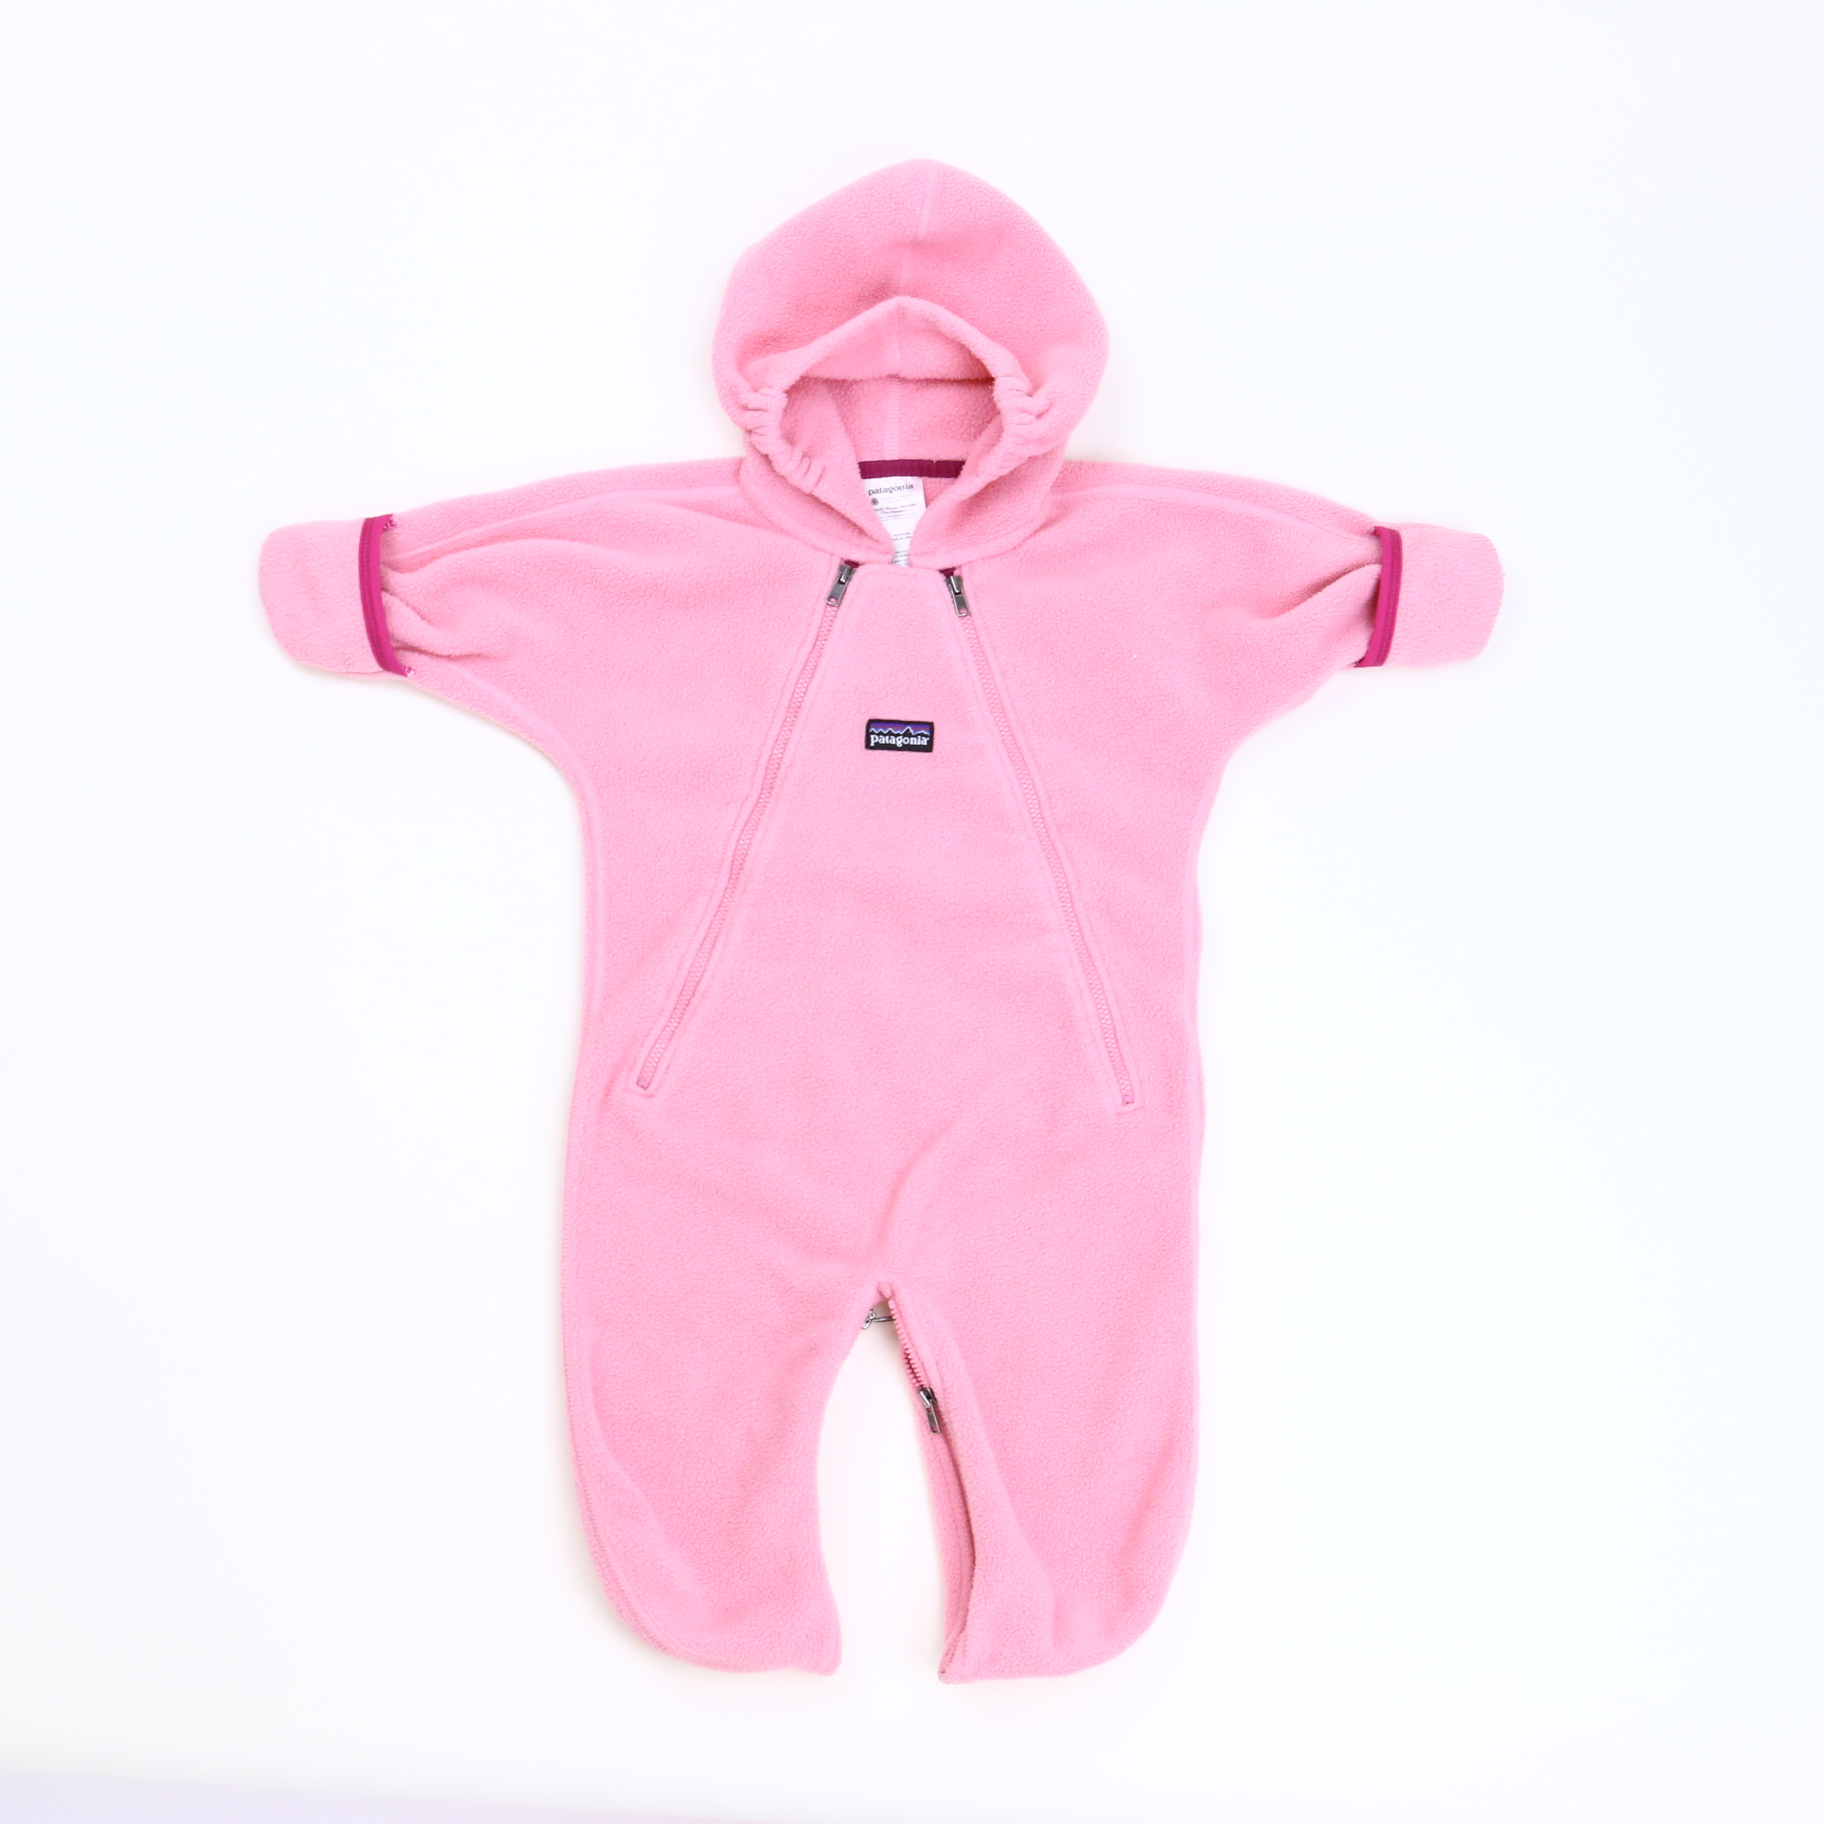 b52936ca5 Bunting size: 6 Months - The Swoondle Society